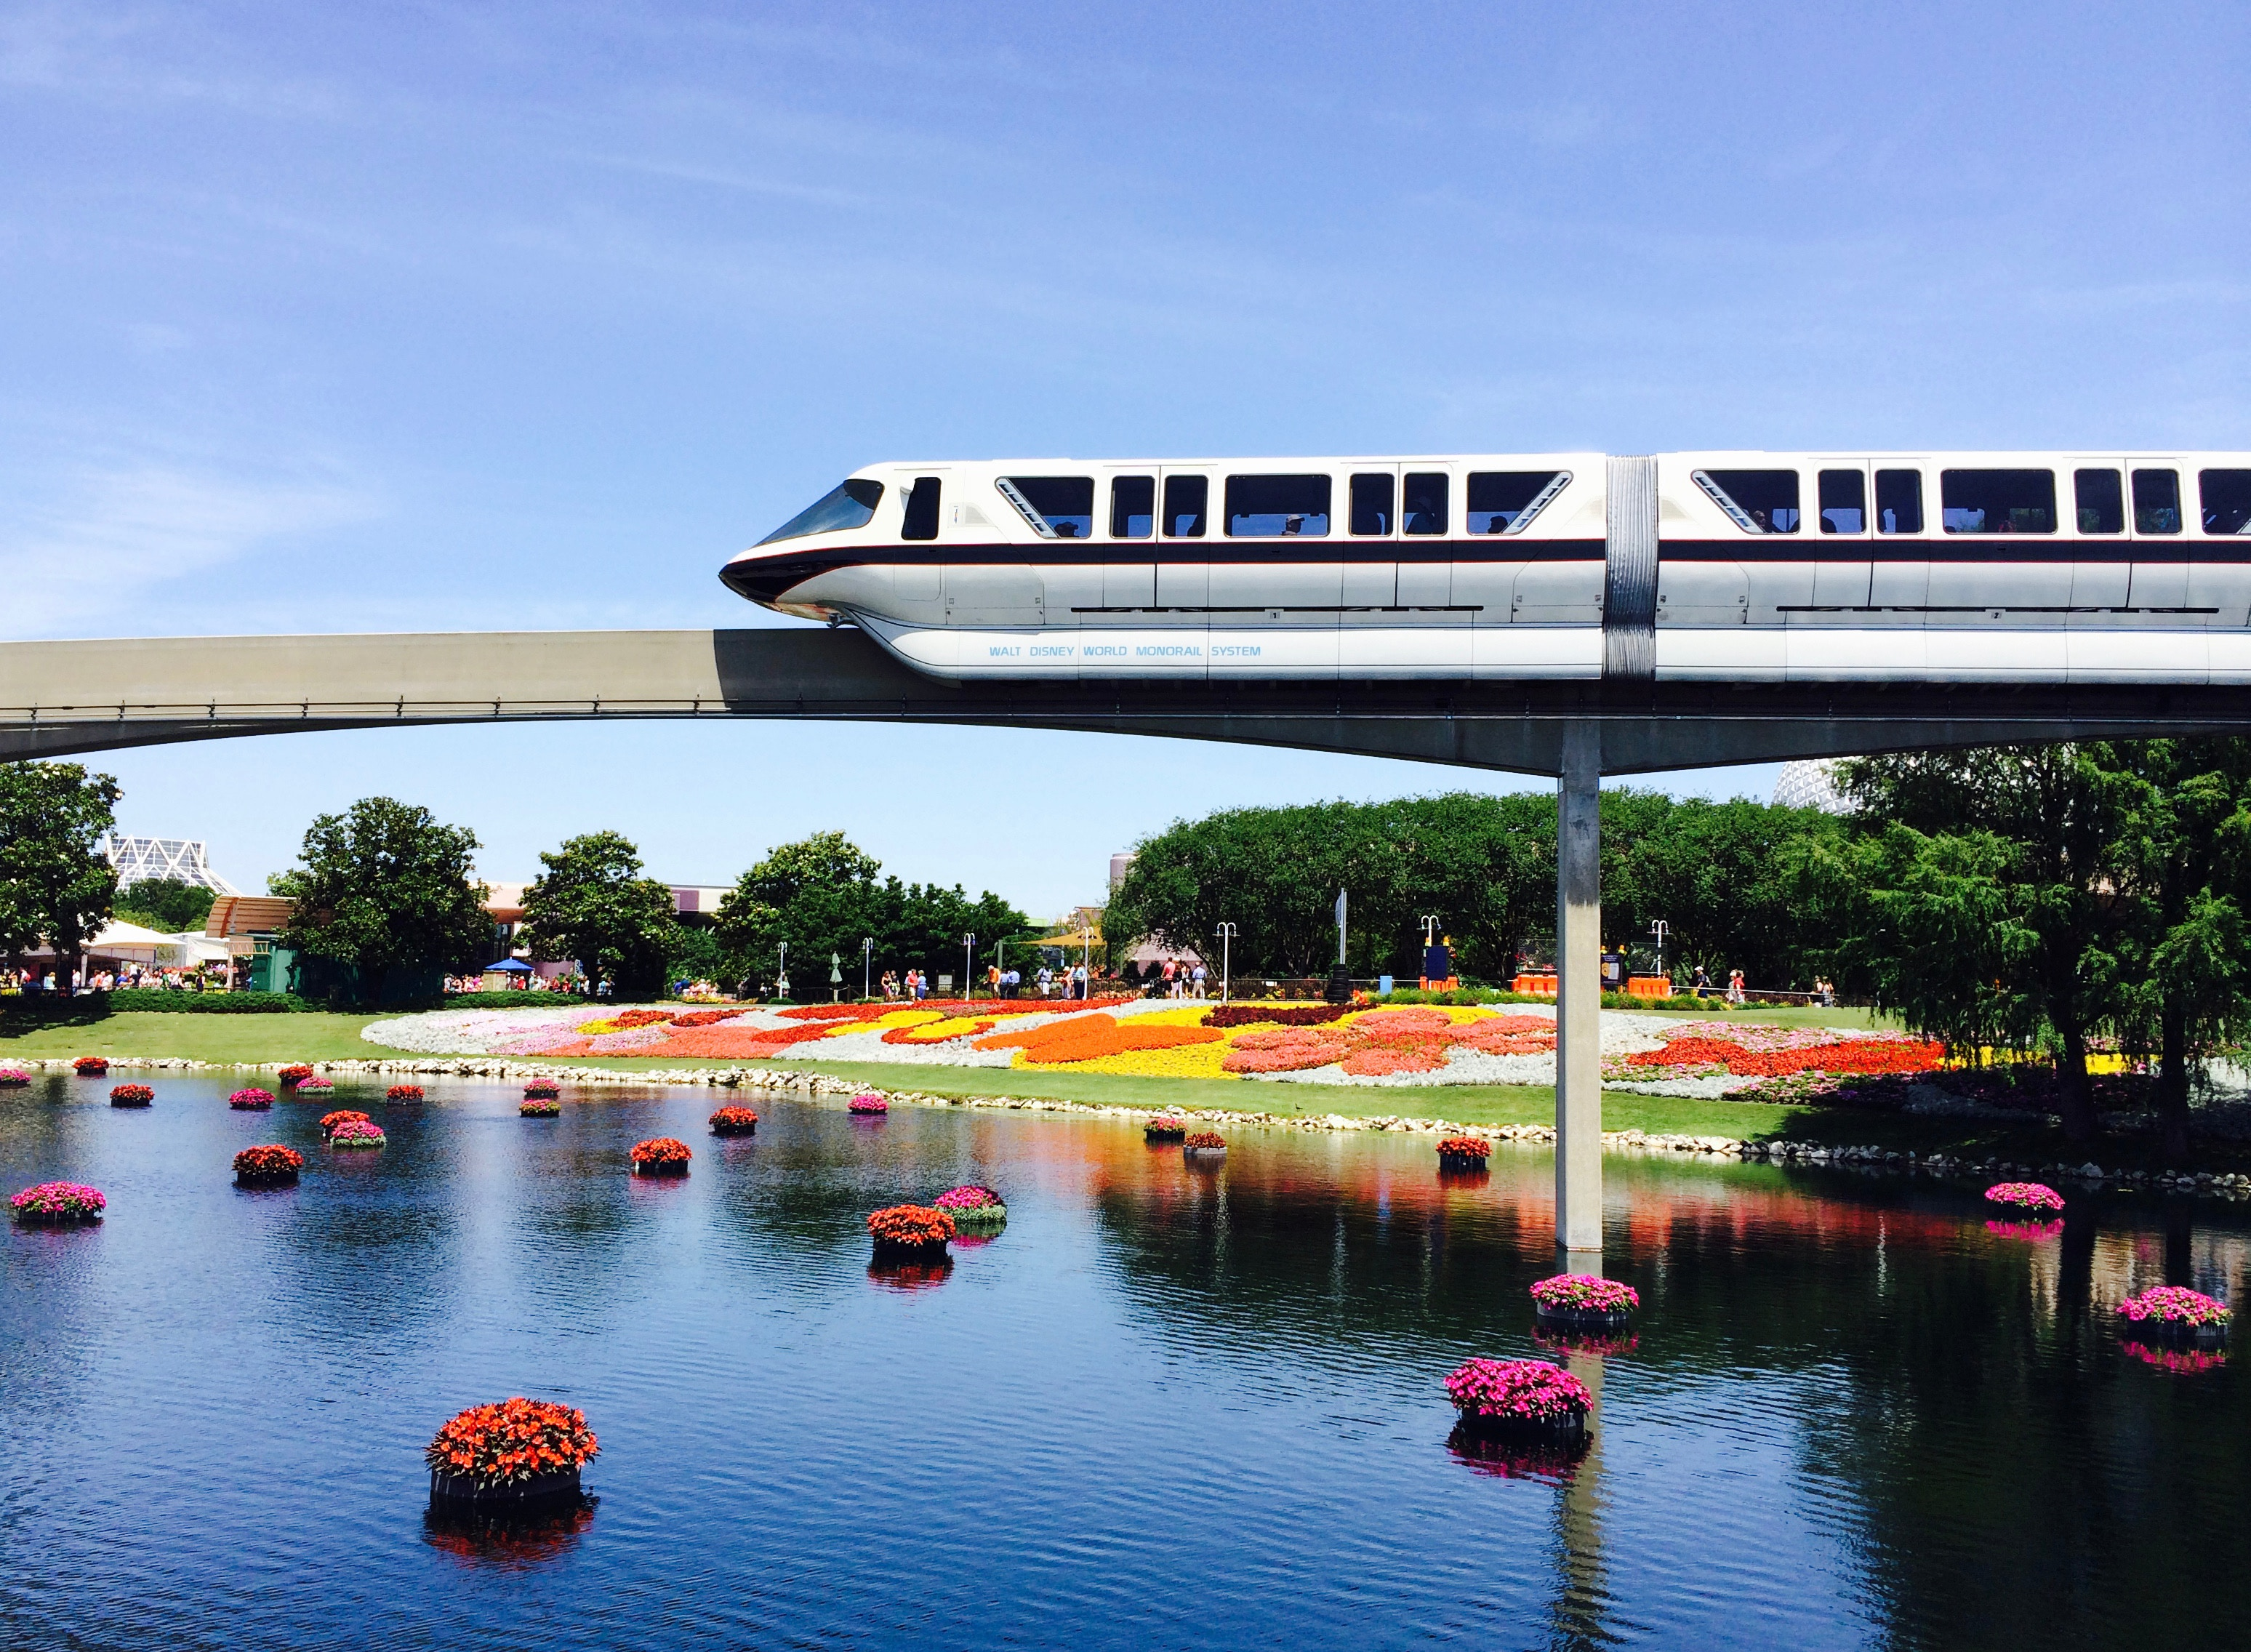 Ride the Disney Monorail free